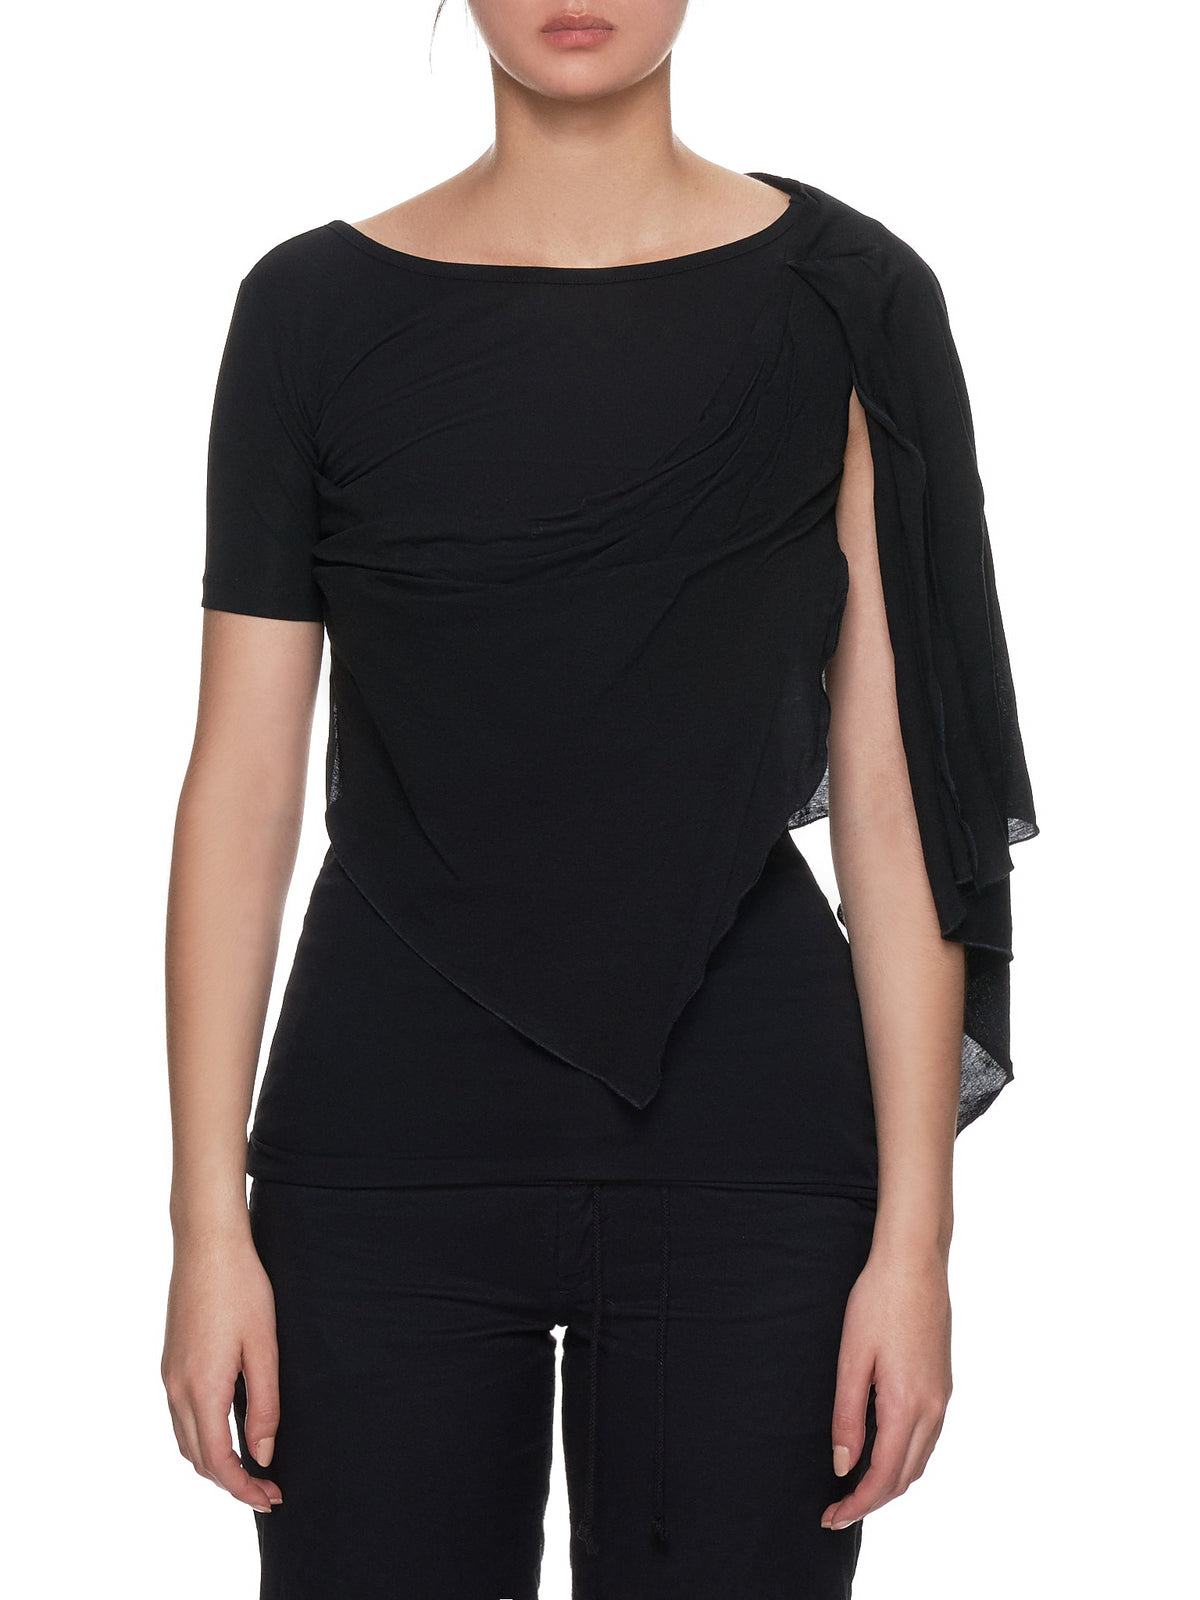 Asymmetrical Cape Top (FH-T11-077-BLACK)